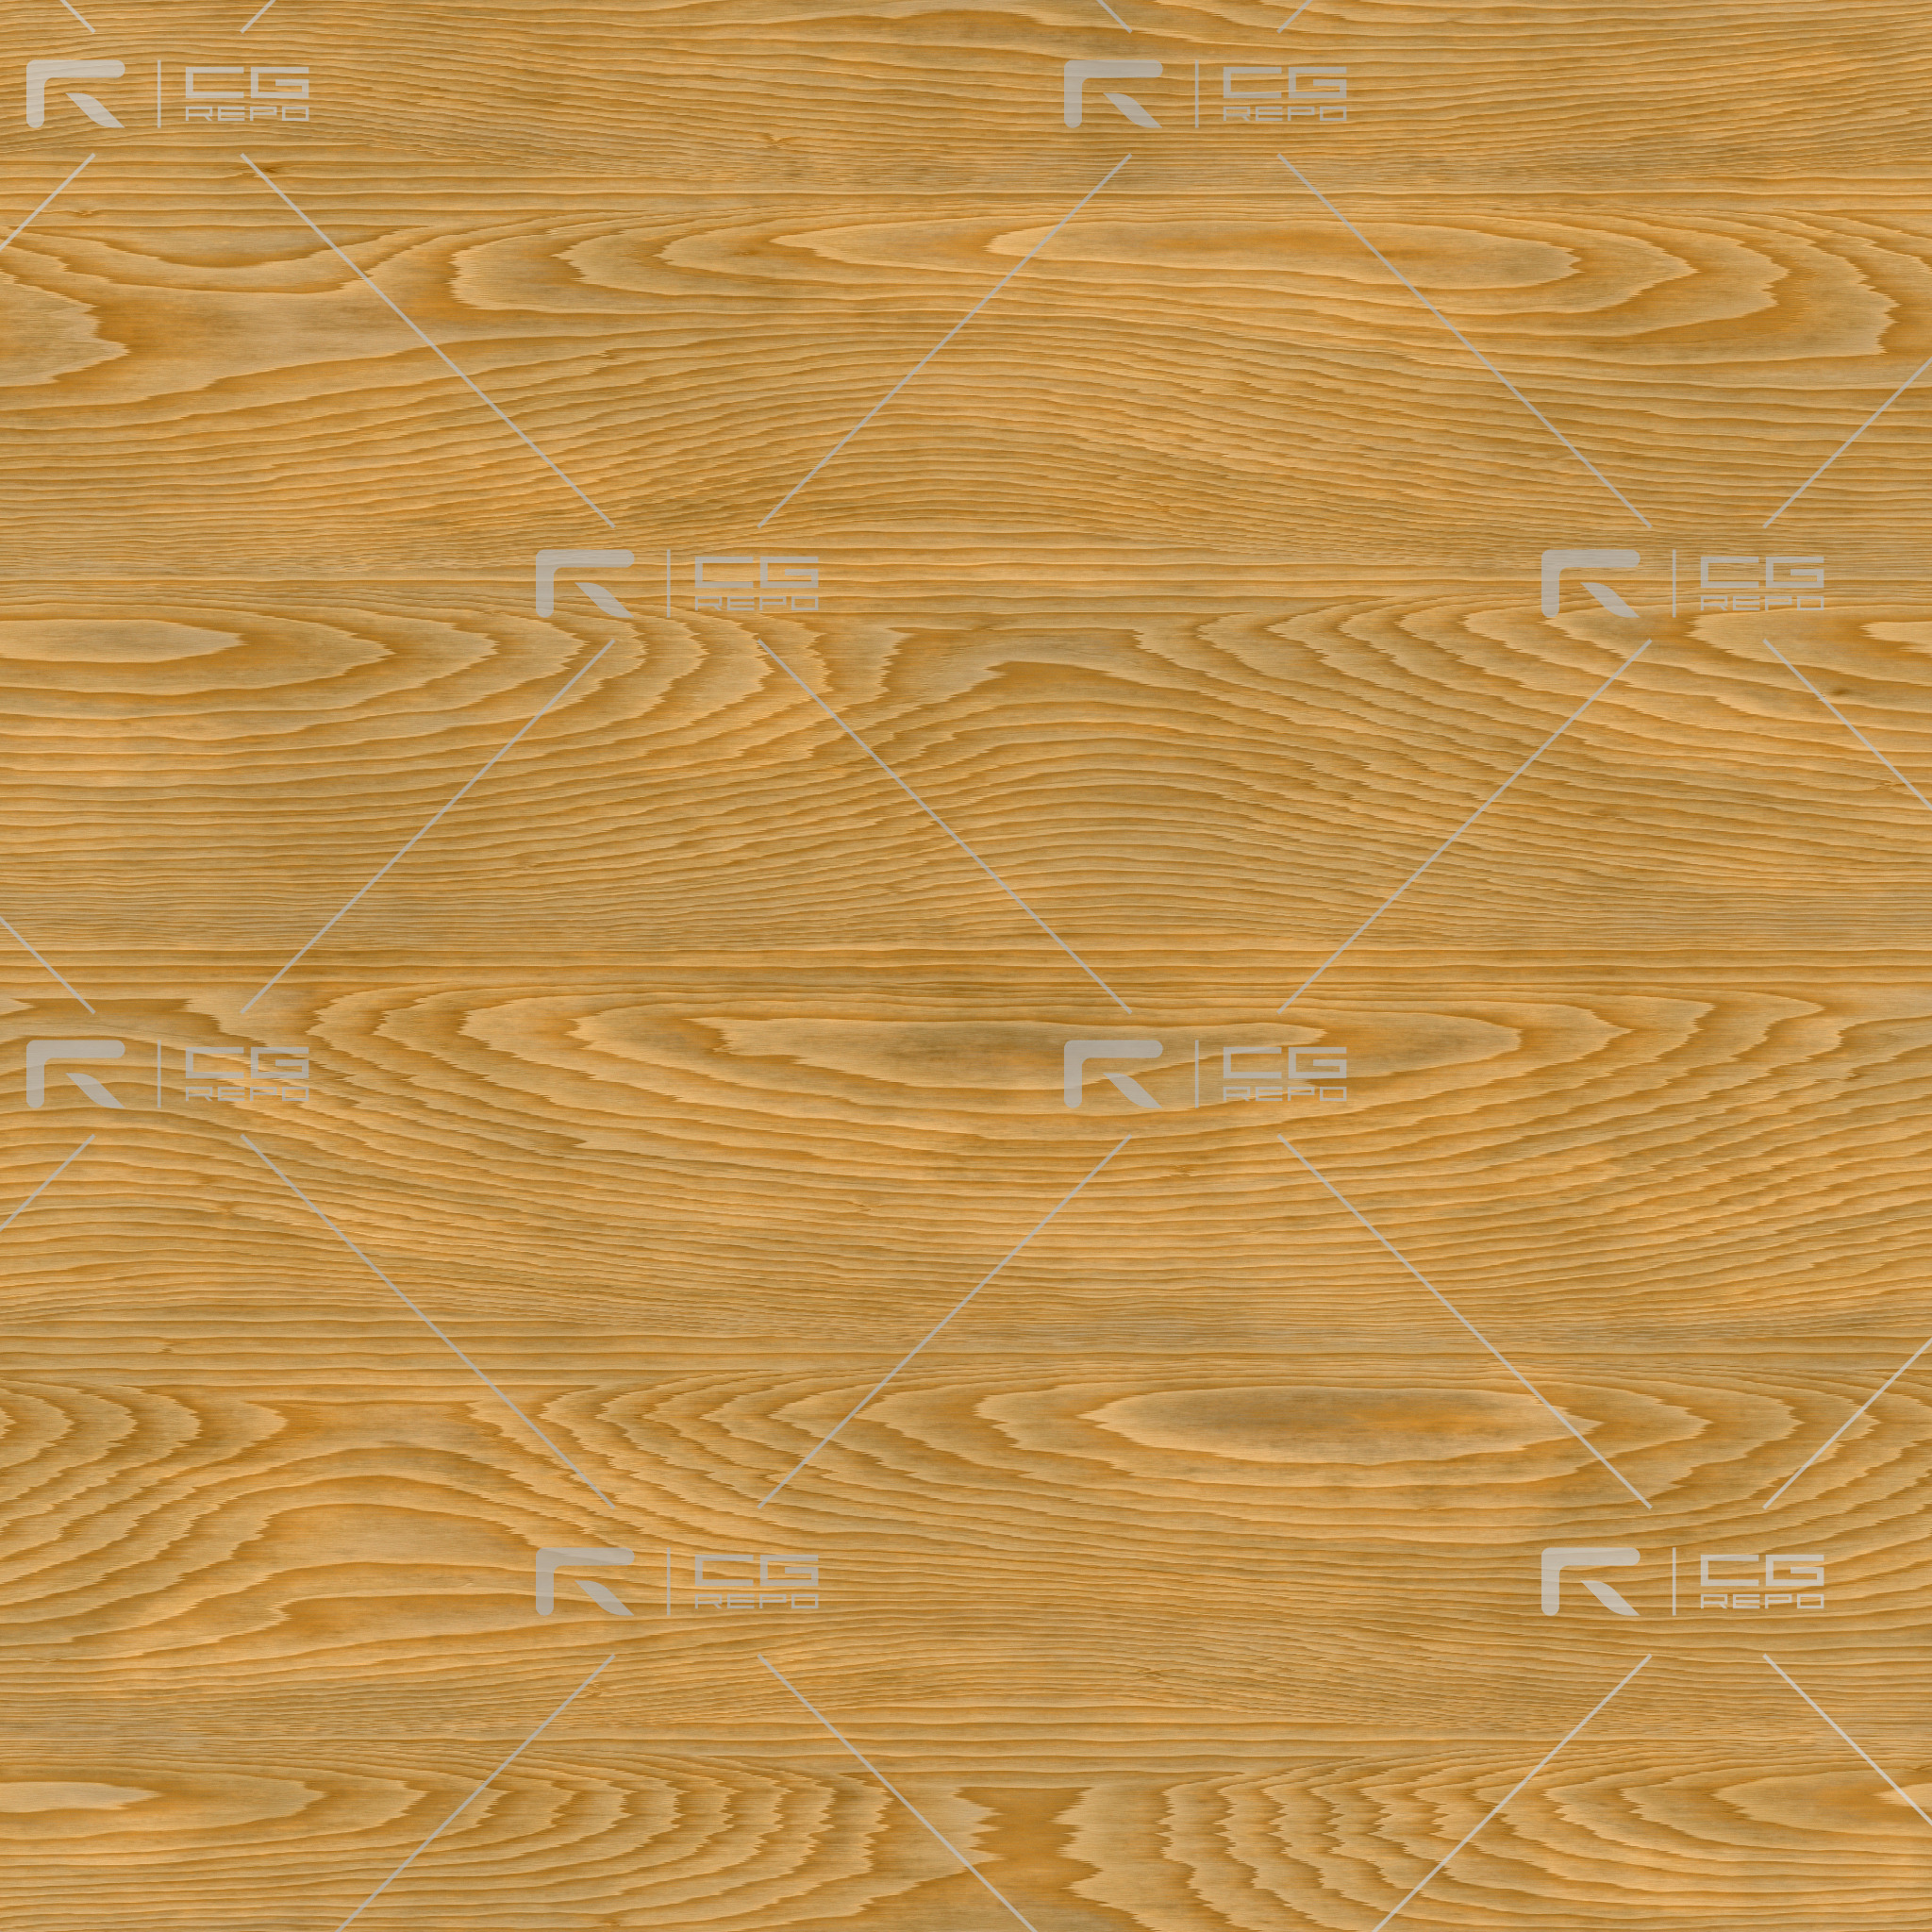 Oak - Natural - Flat BaseColor Texture